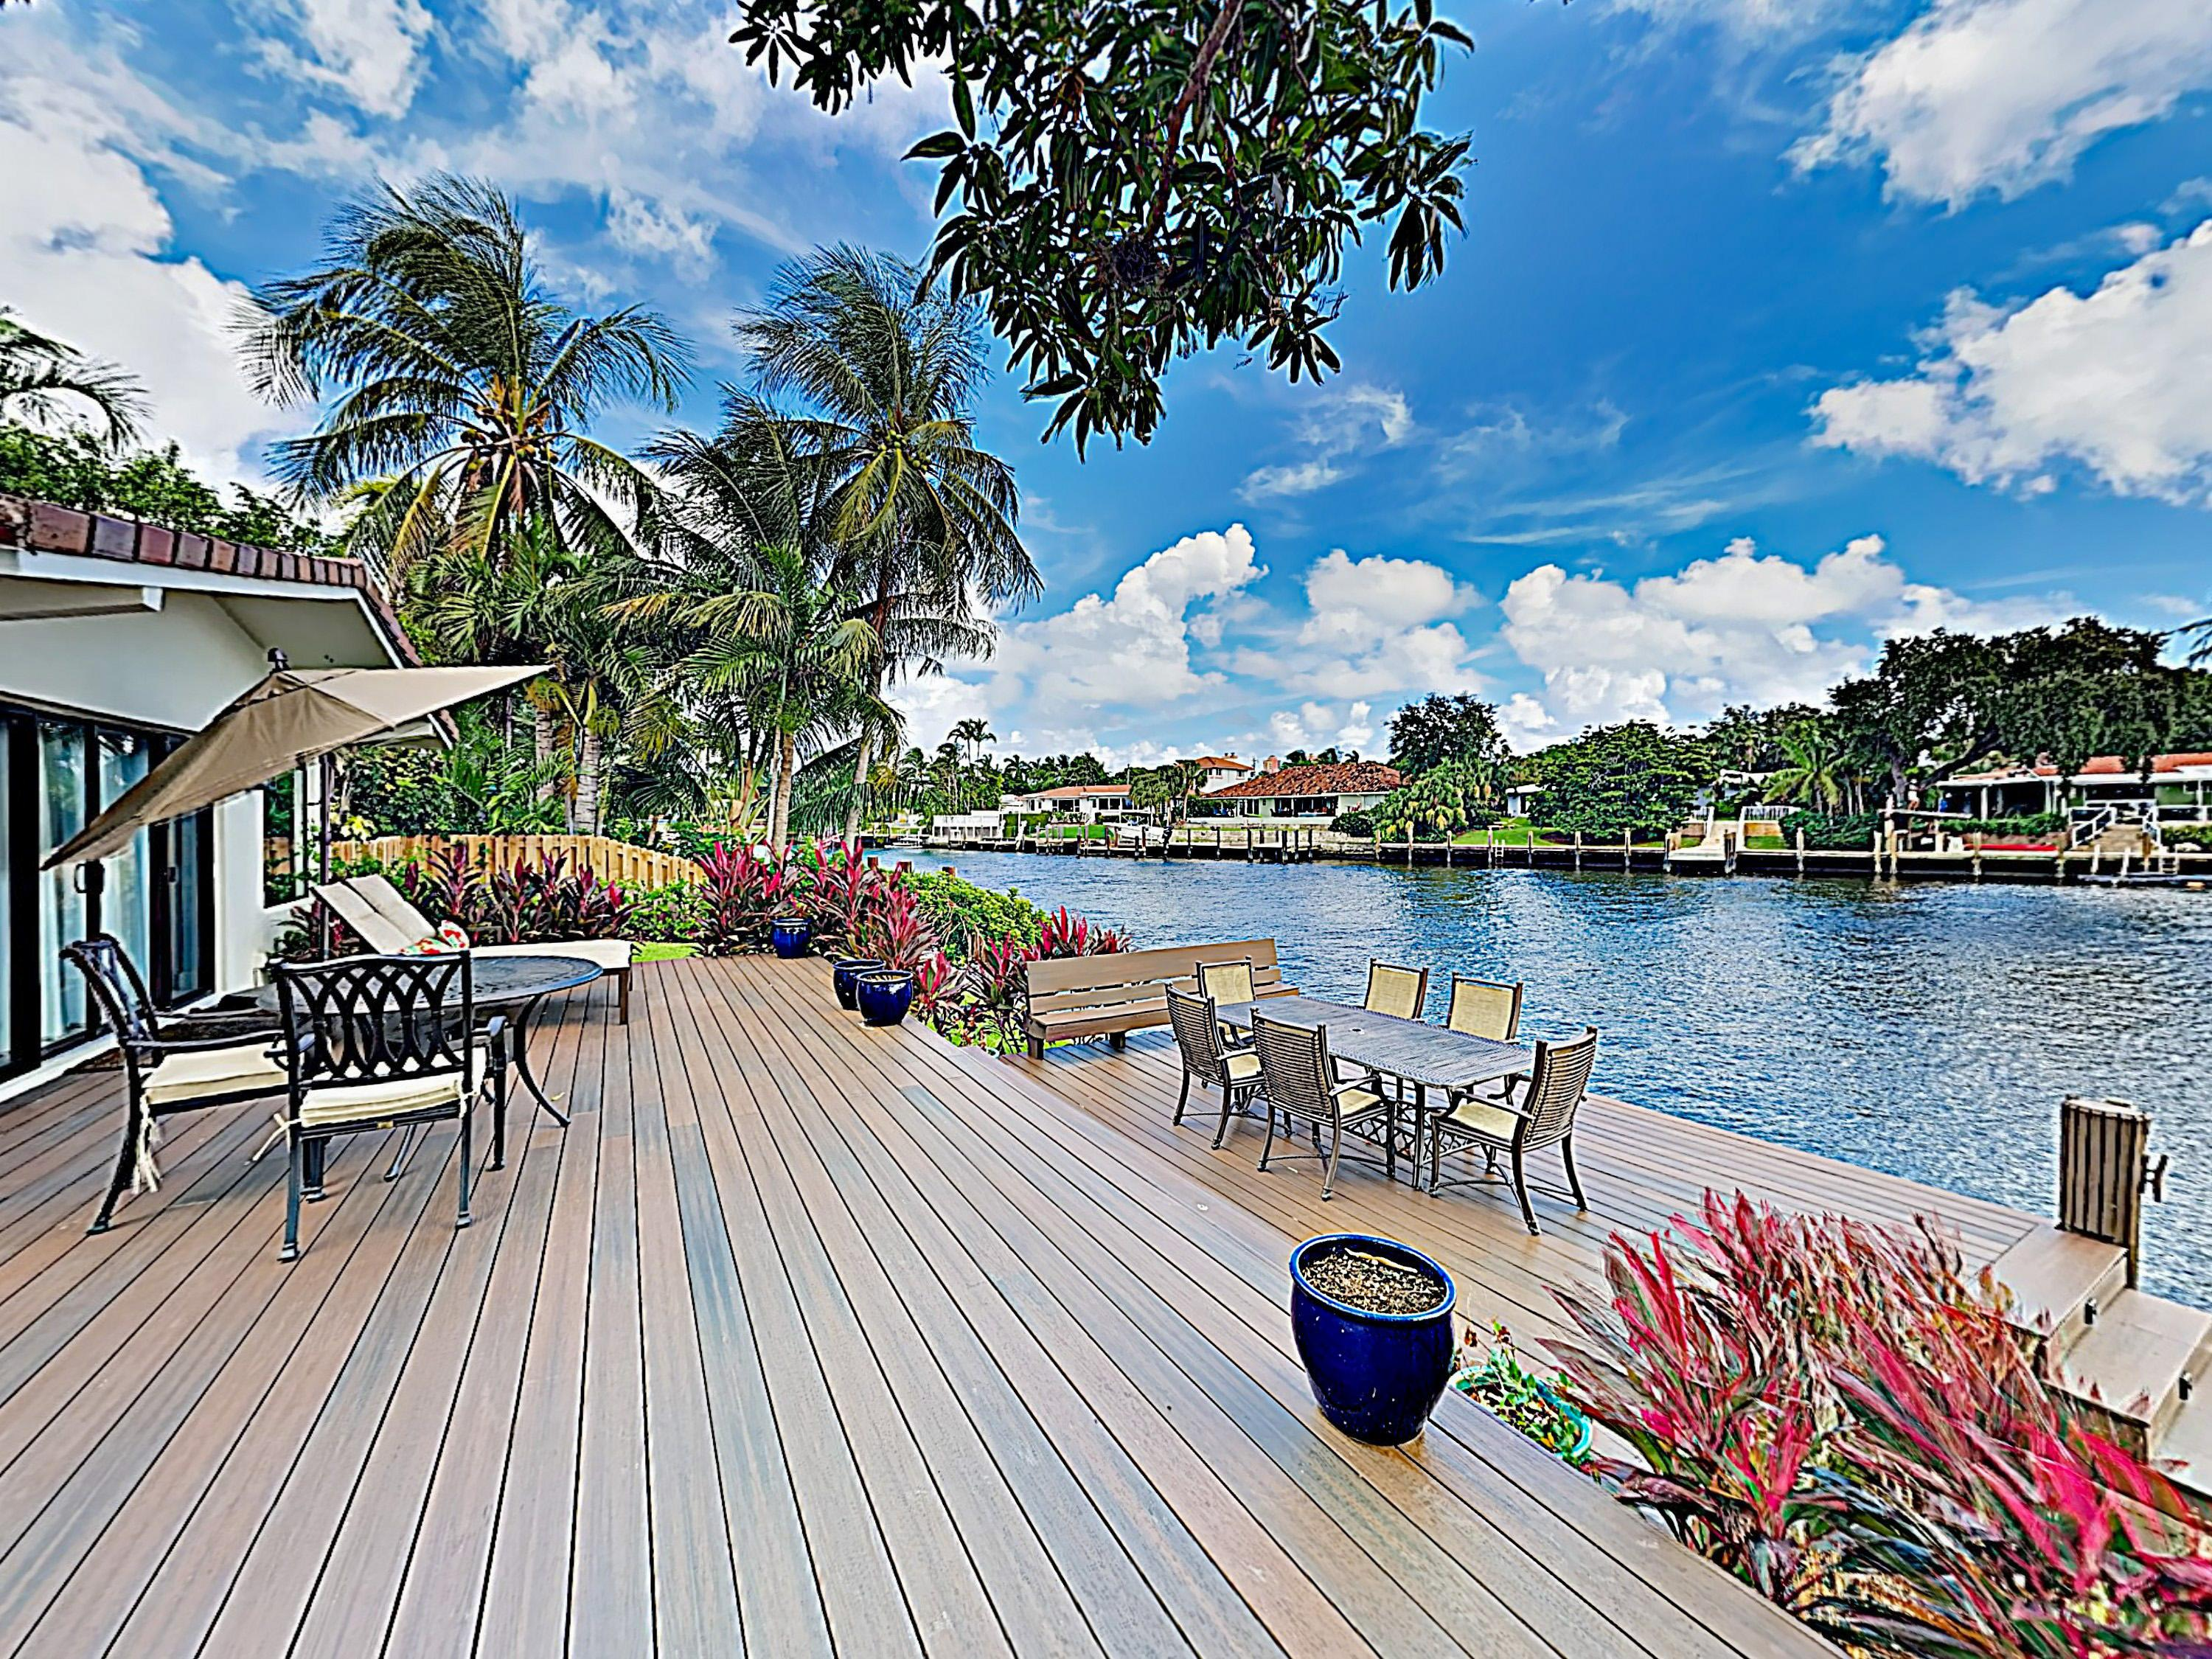 Take in beautiful views of the Las Olas Isles waterway while you relax poolside.